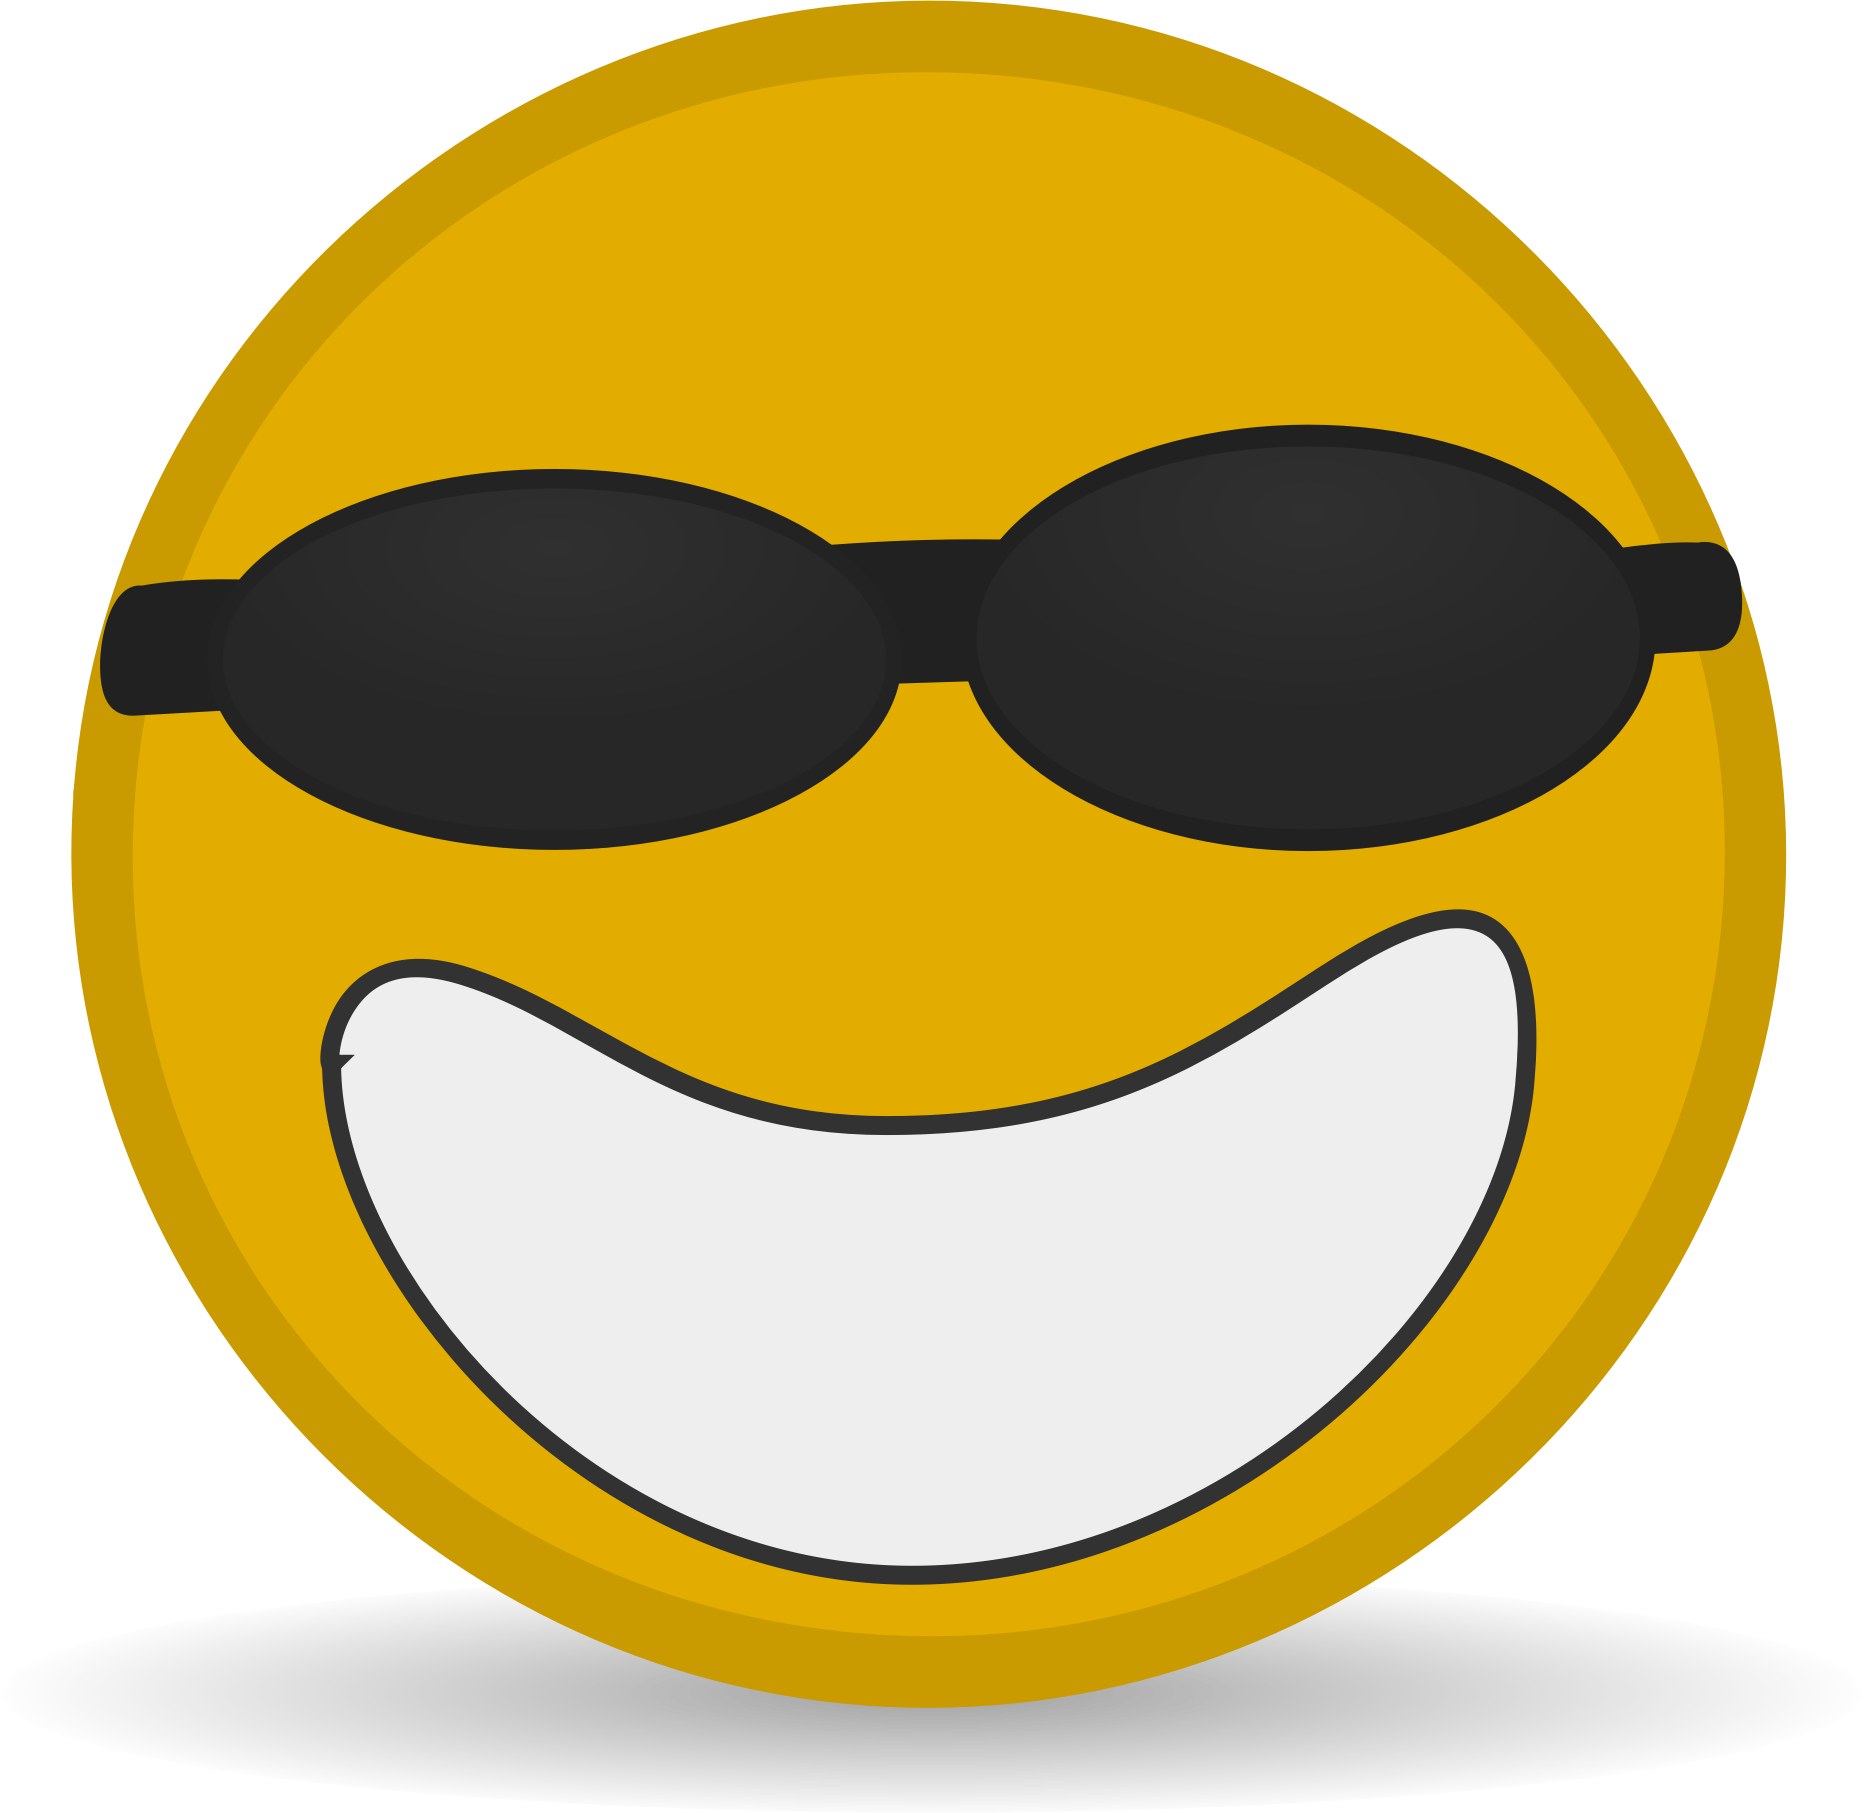 Cool icon big image. Taste clipart face